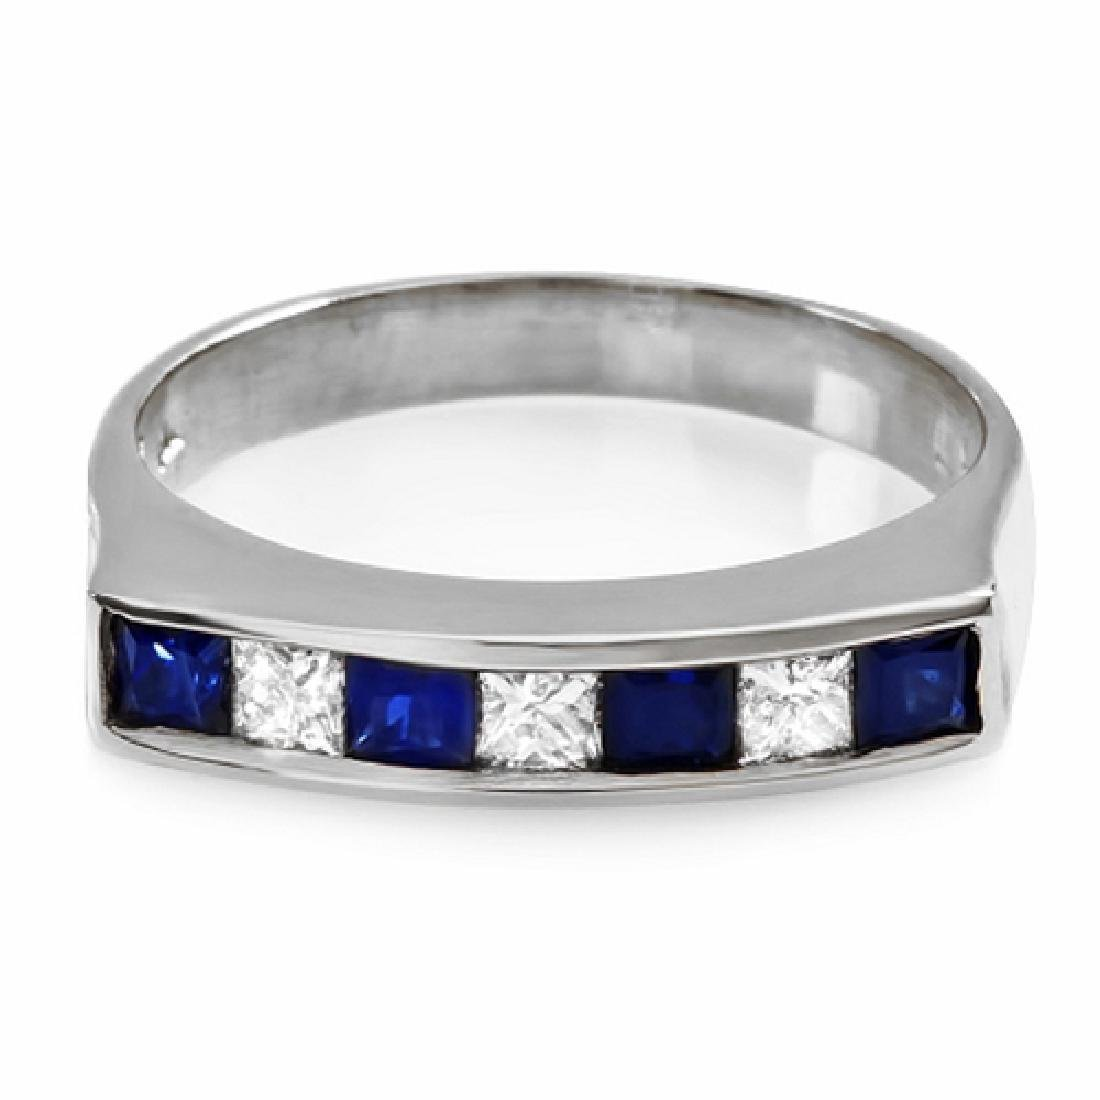 1.00 Carat Natural Sapphire 18K Solid White Gold